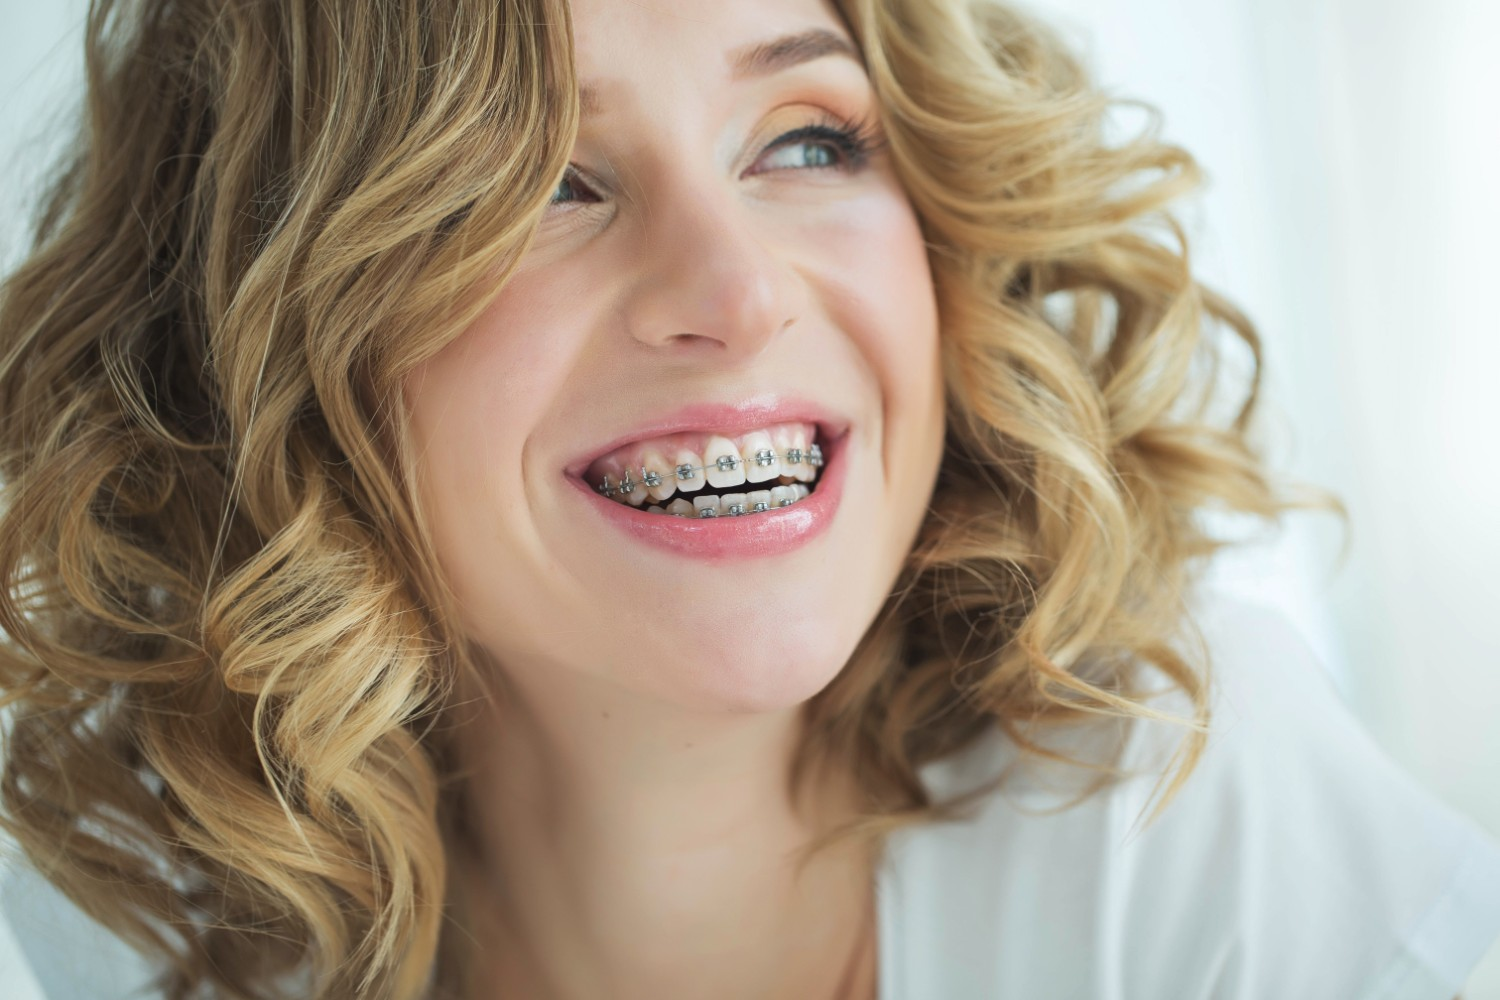 What Are The Benefits Of Braces Beyond Straight Teeth?